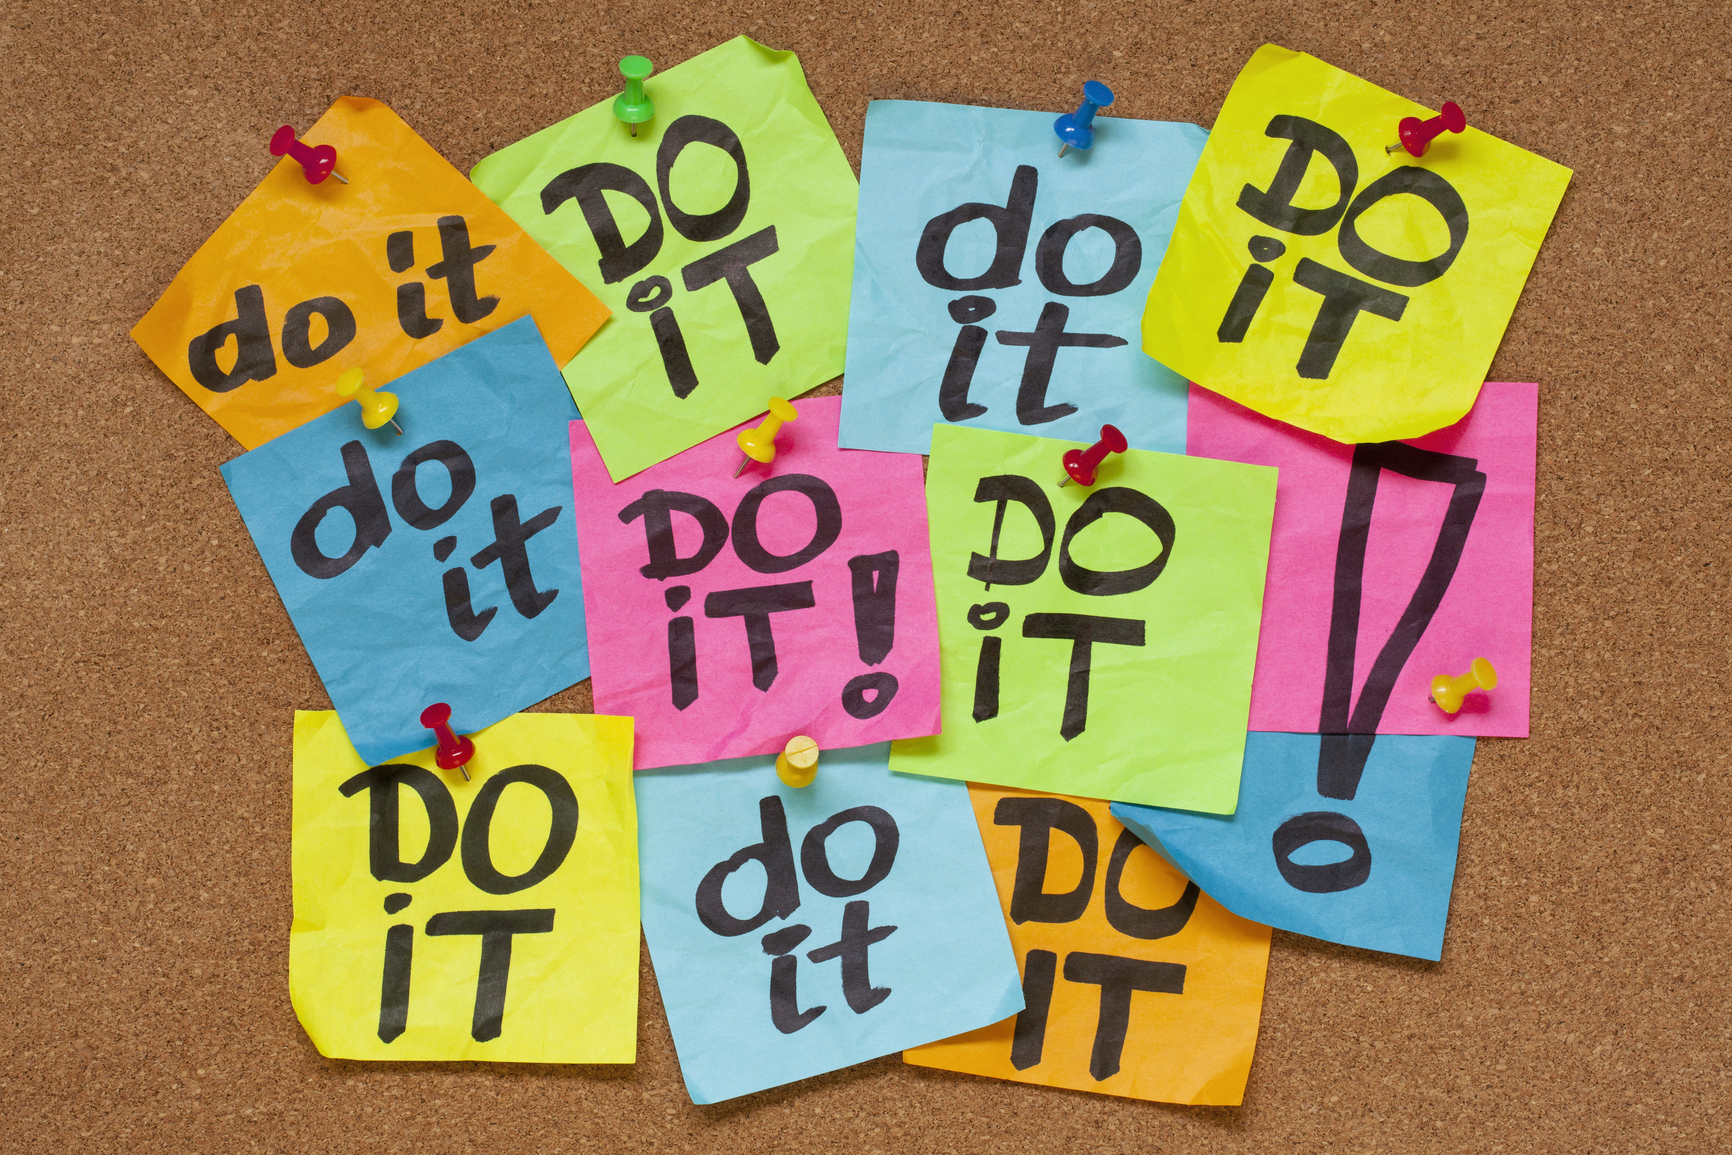 fighting procrastination concept - do it phrase on color sticky notes posted on a cork bulletin board (CC by 2.0)